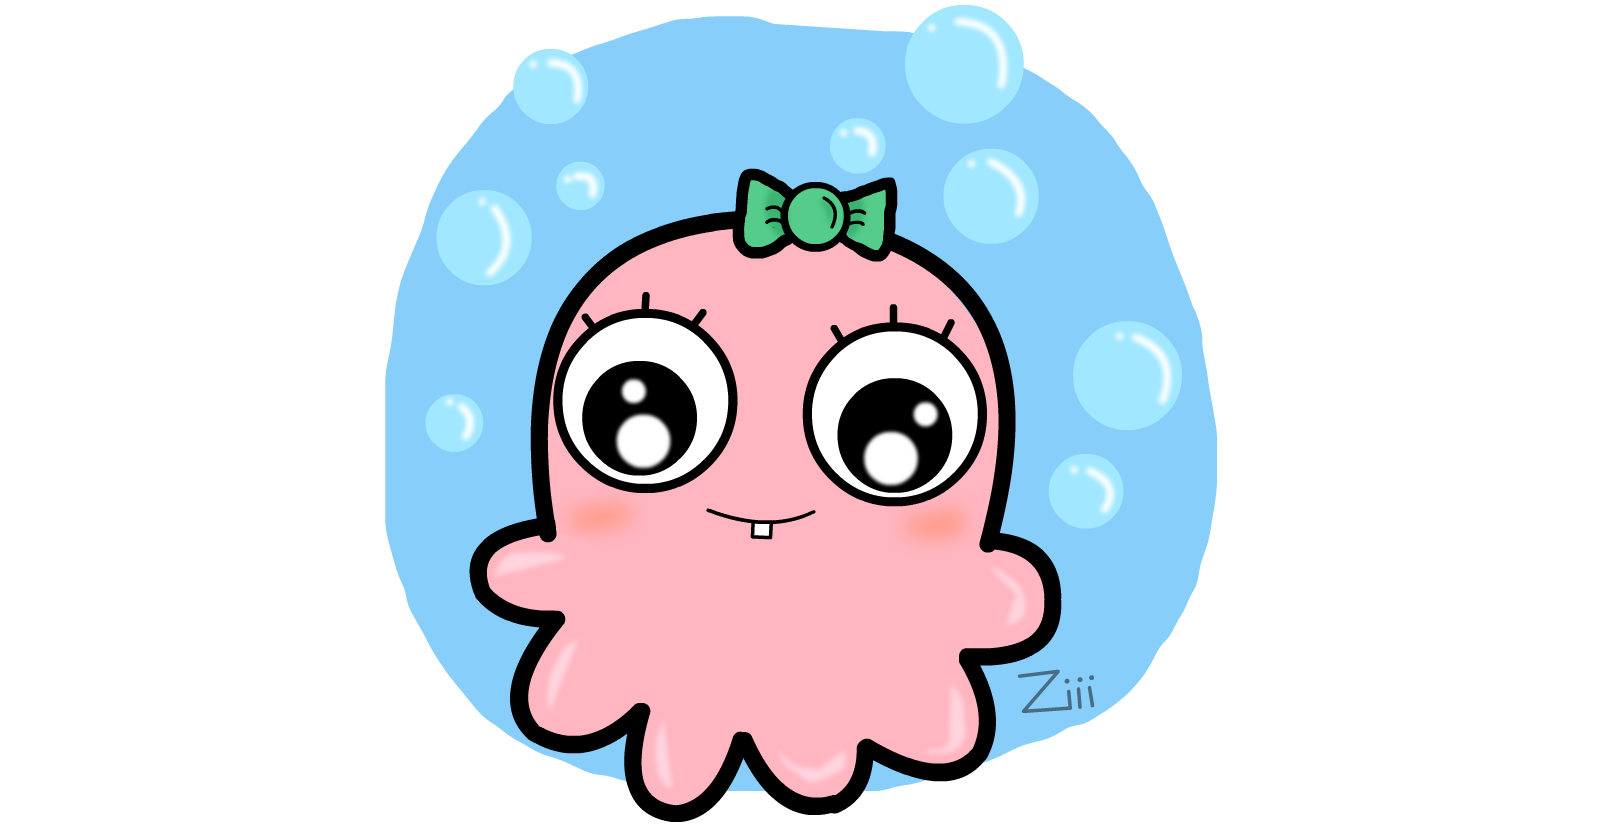 Unevolved Octopus/Cotton Candy Mutated Chemical